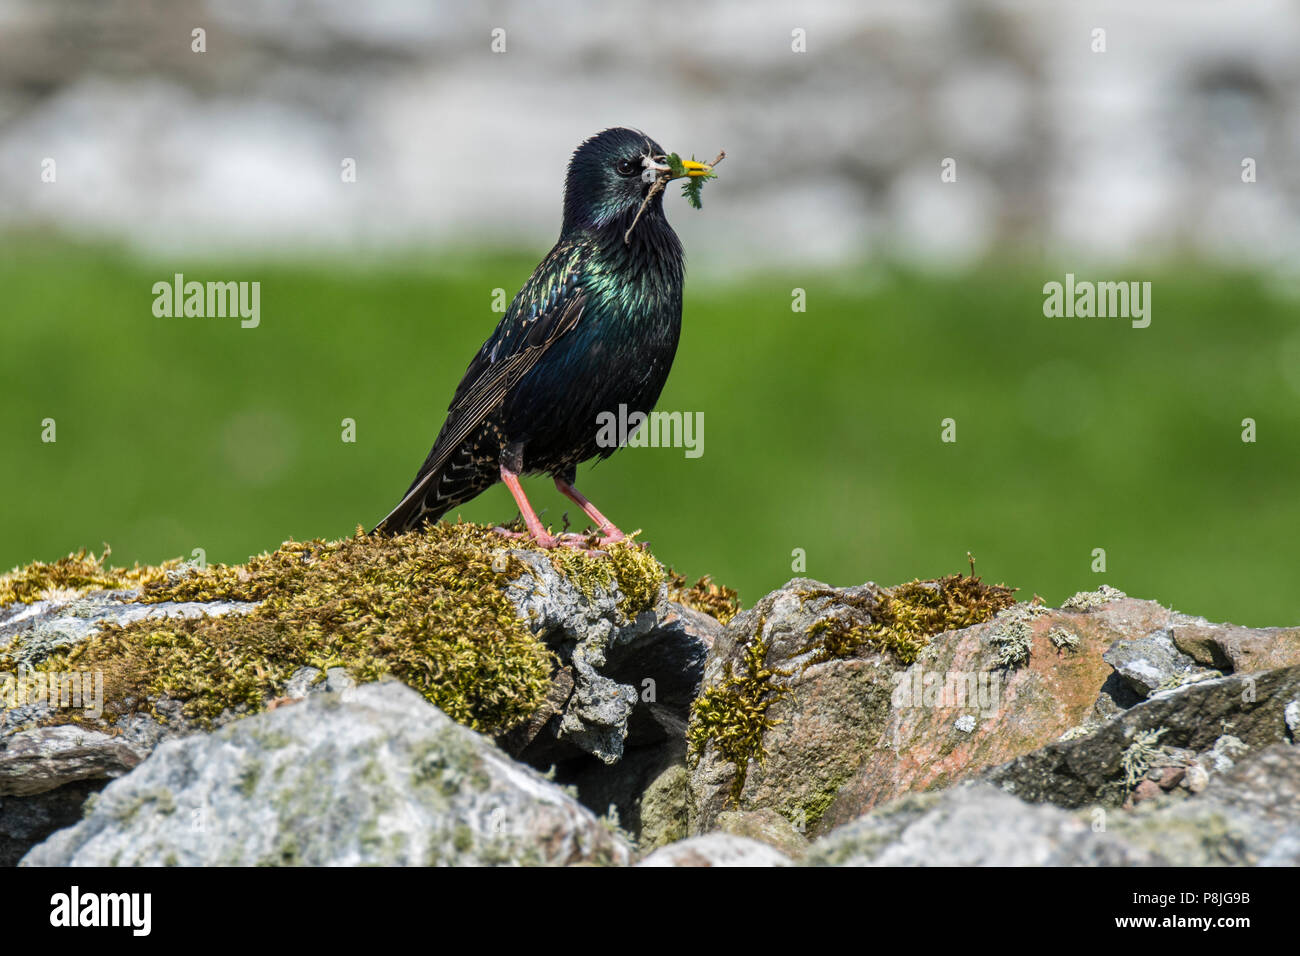 Common starling / European starling (Sturnus vulgaris) with twig in beak for building nest inside dry stone wall in spring, Scotland, UK - Stock Image